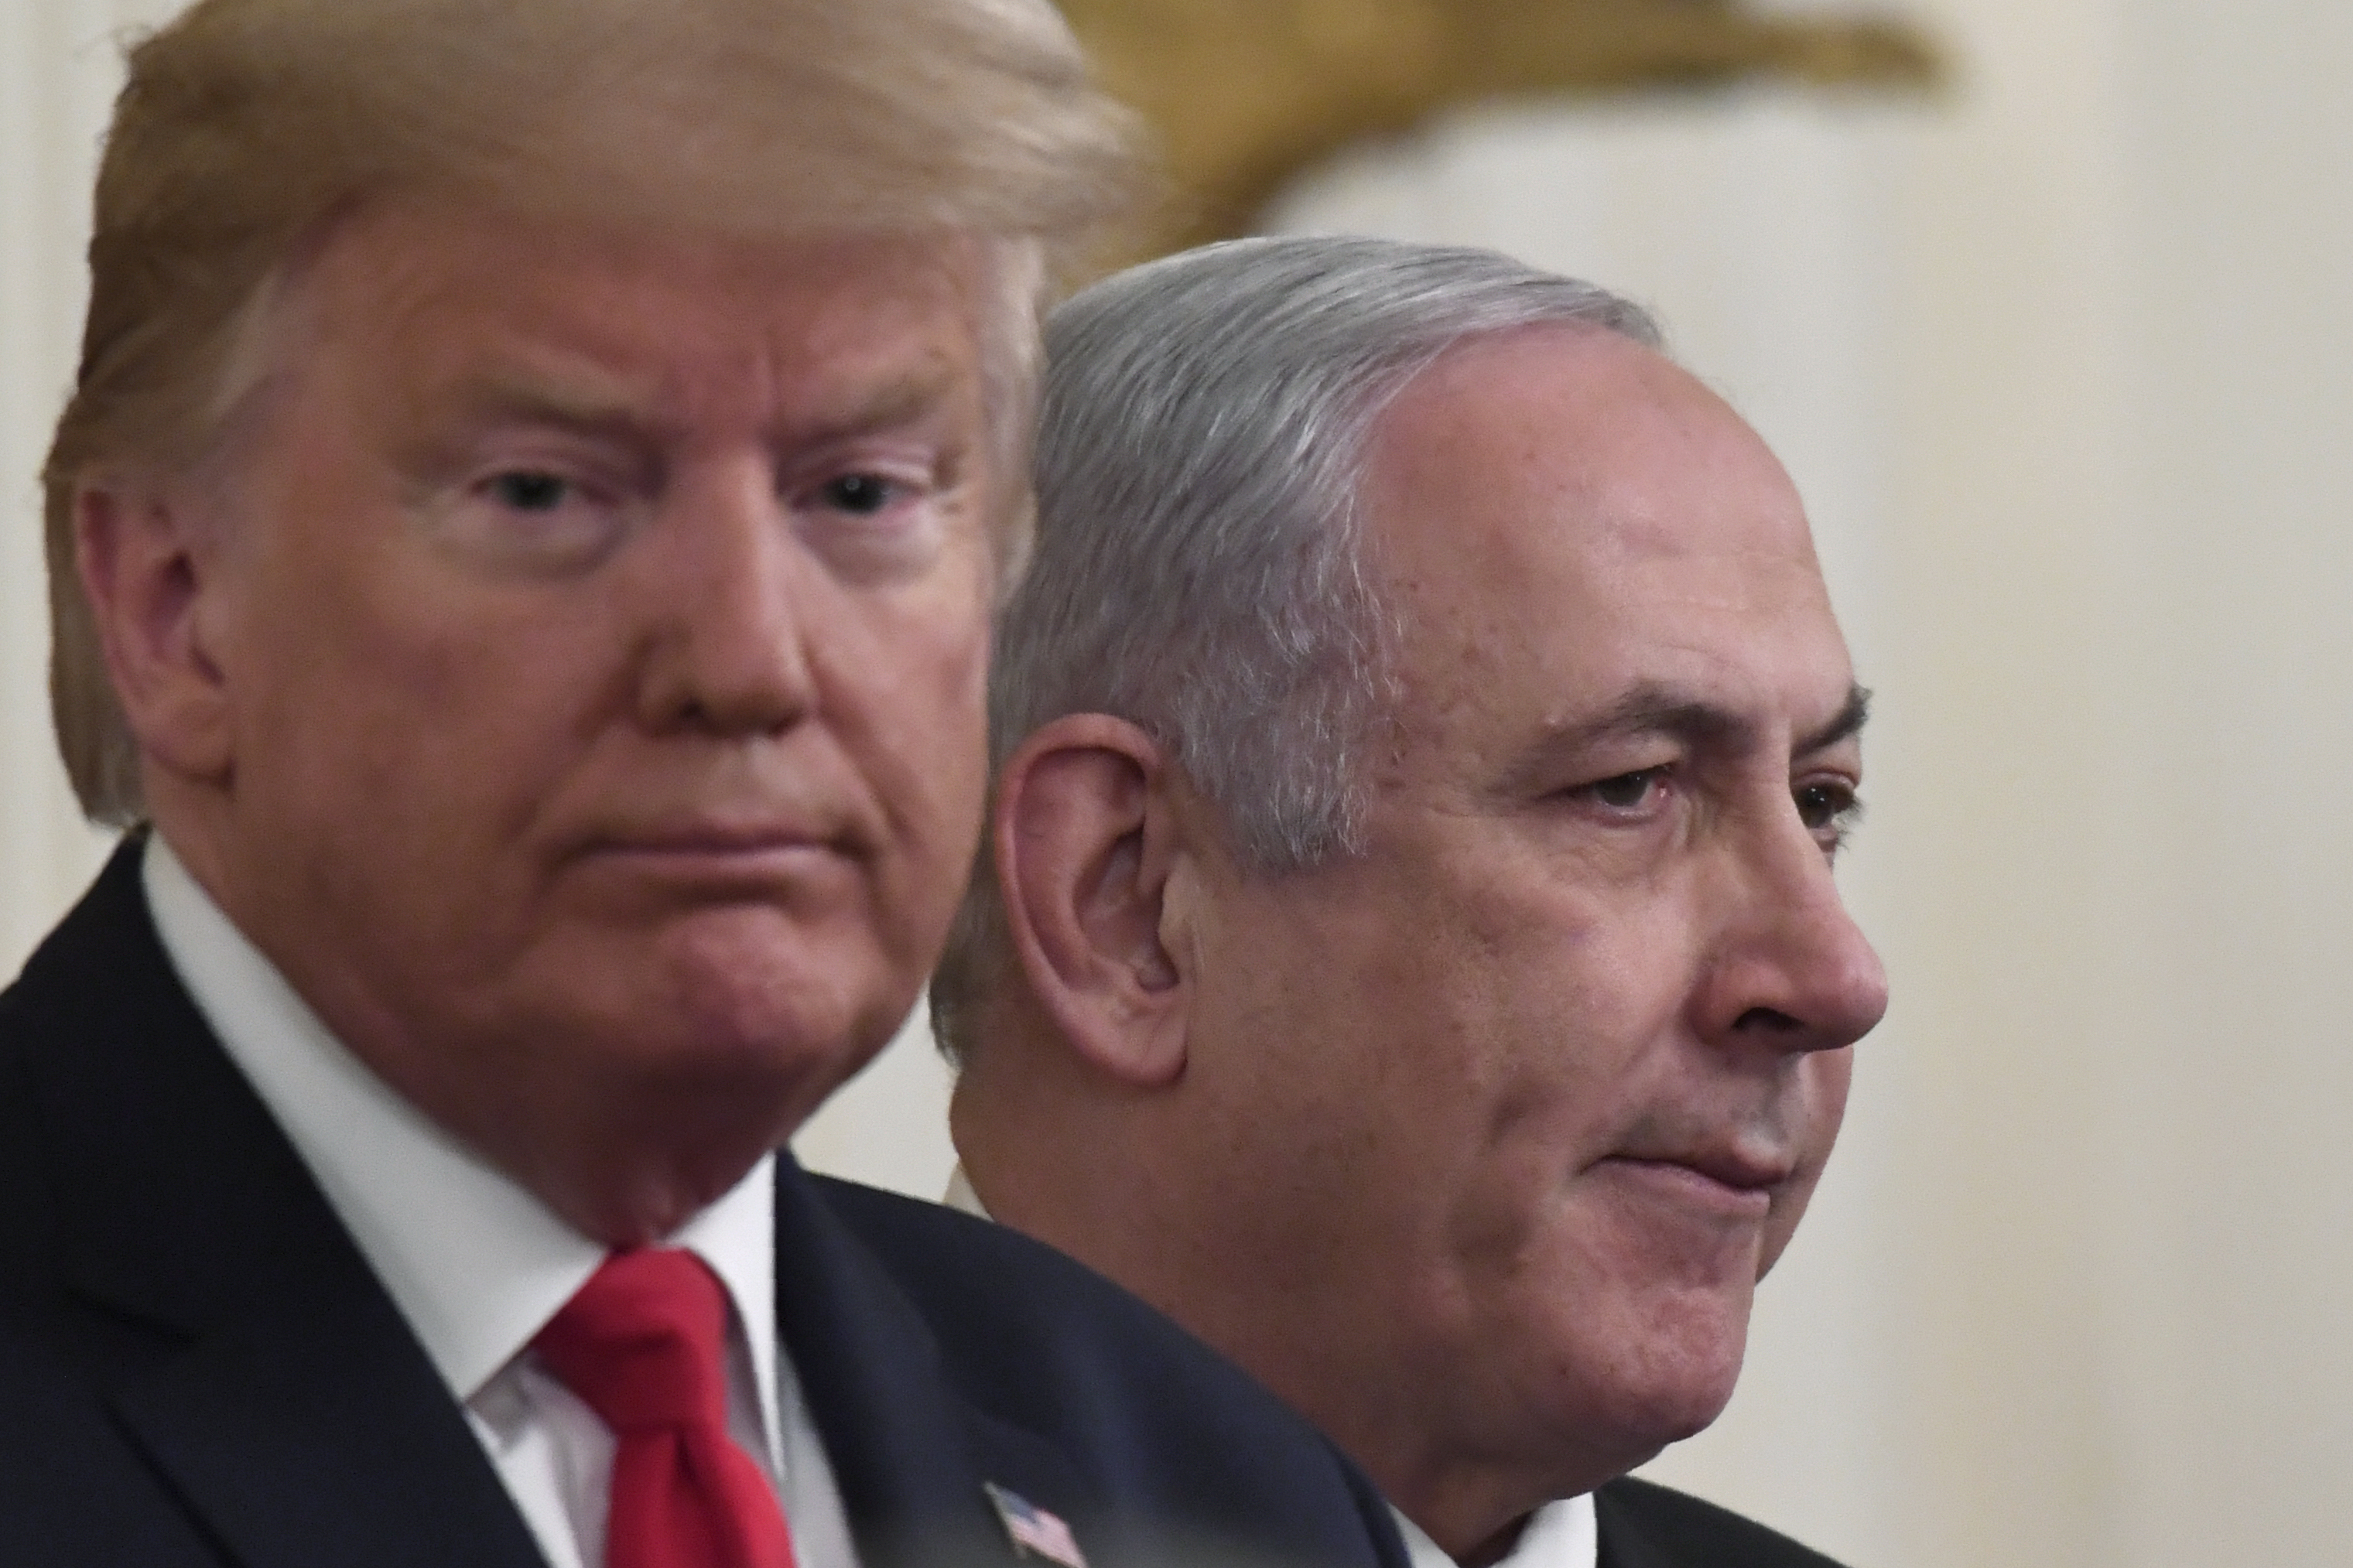 Donald Trump, left, and Benjamin Netanyahu, right, during an event in the East Room of the White House in Washington, on January 28, 2020